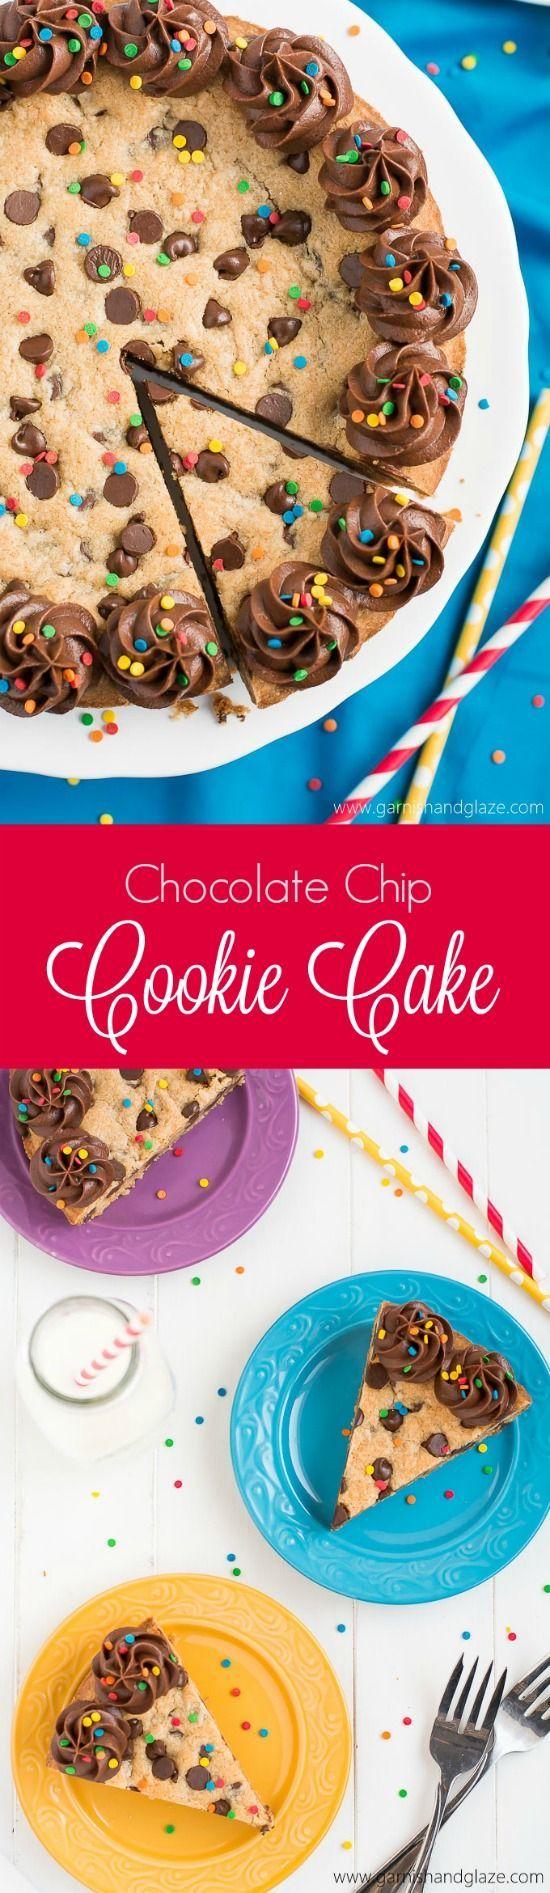 Chocolate Chip Cookie Cake  Garnish VIDEO This easy rich and chewy Chocolate Chip Cookie Cake is the perfect cake to make for your next birthday celebration